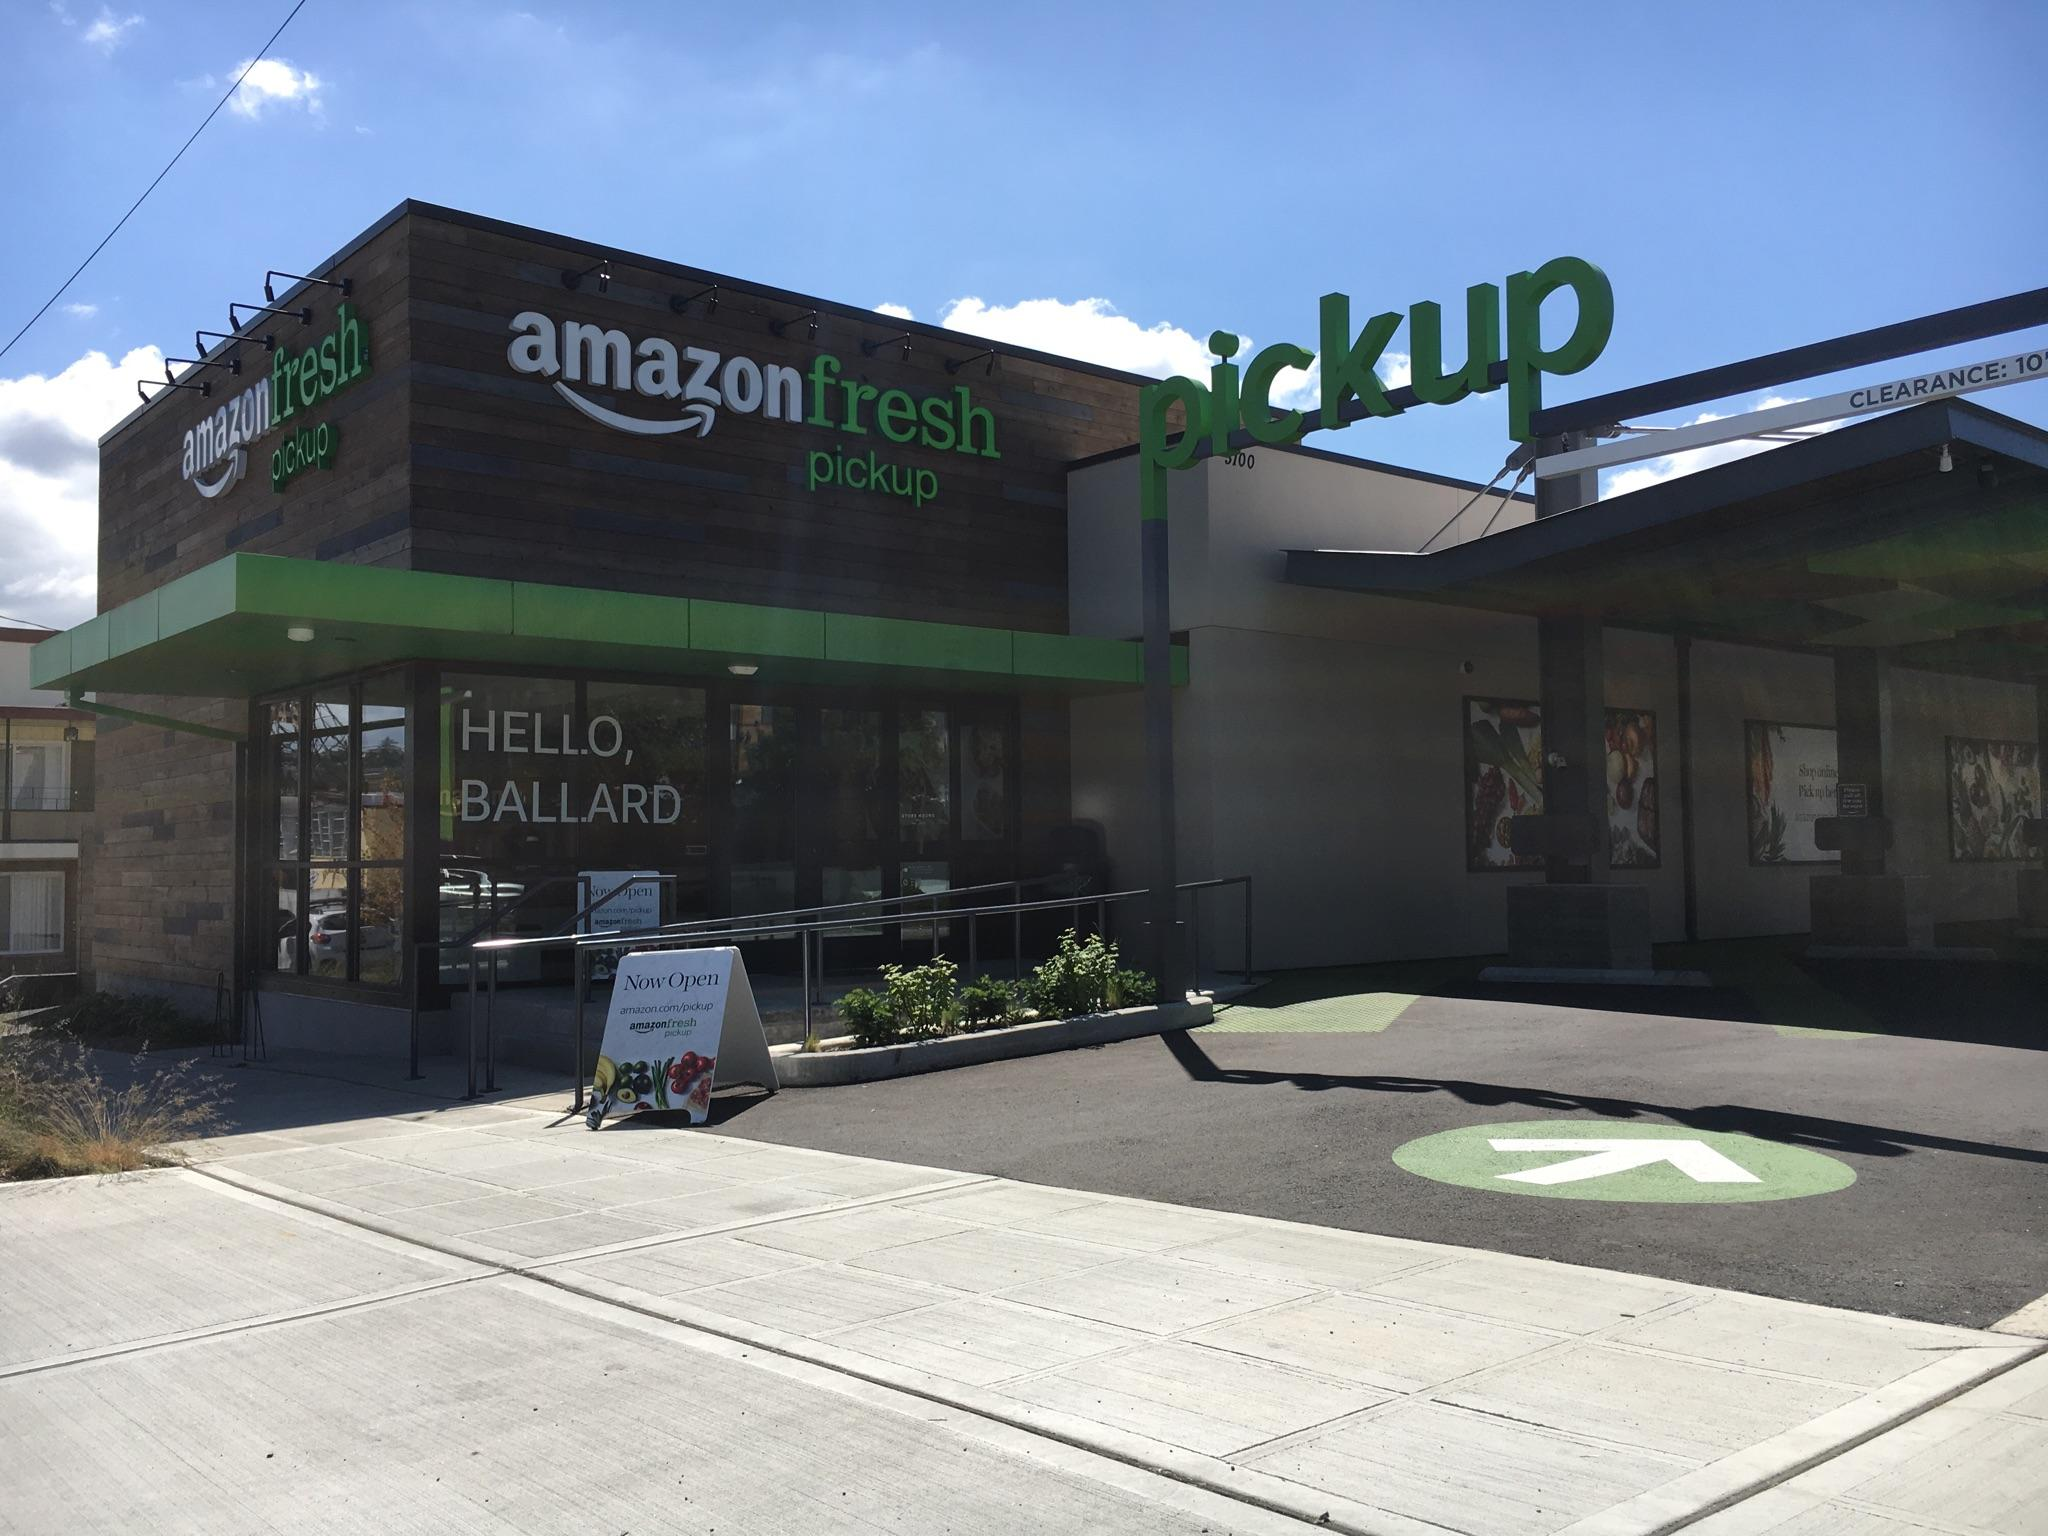 what amazonfresh means for traditional grocery stores kuow news the amazonfresh pickup site in ballard